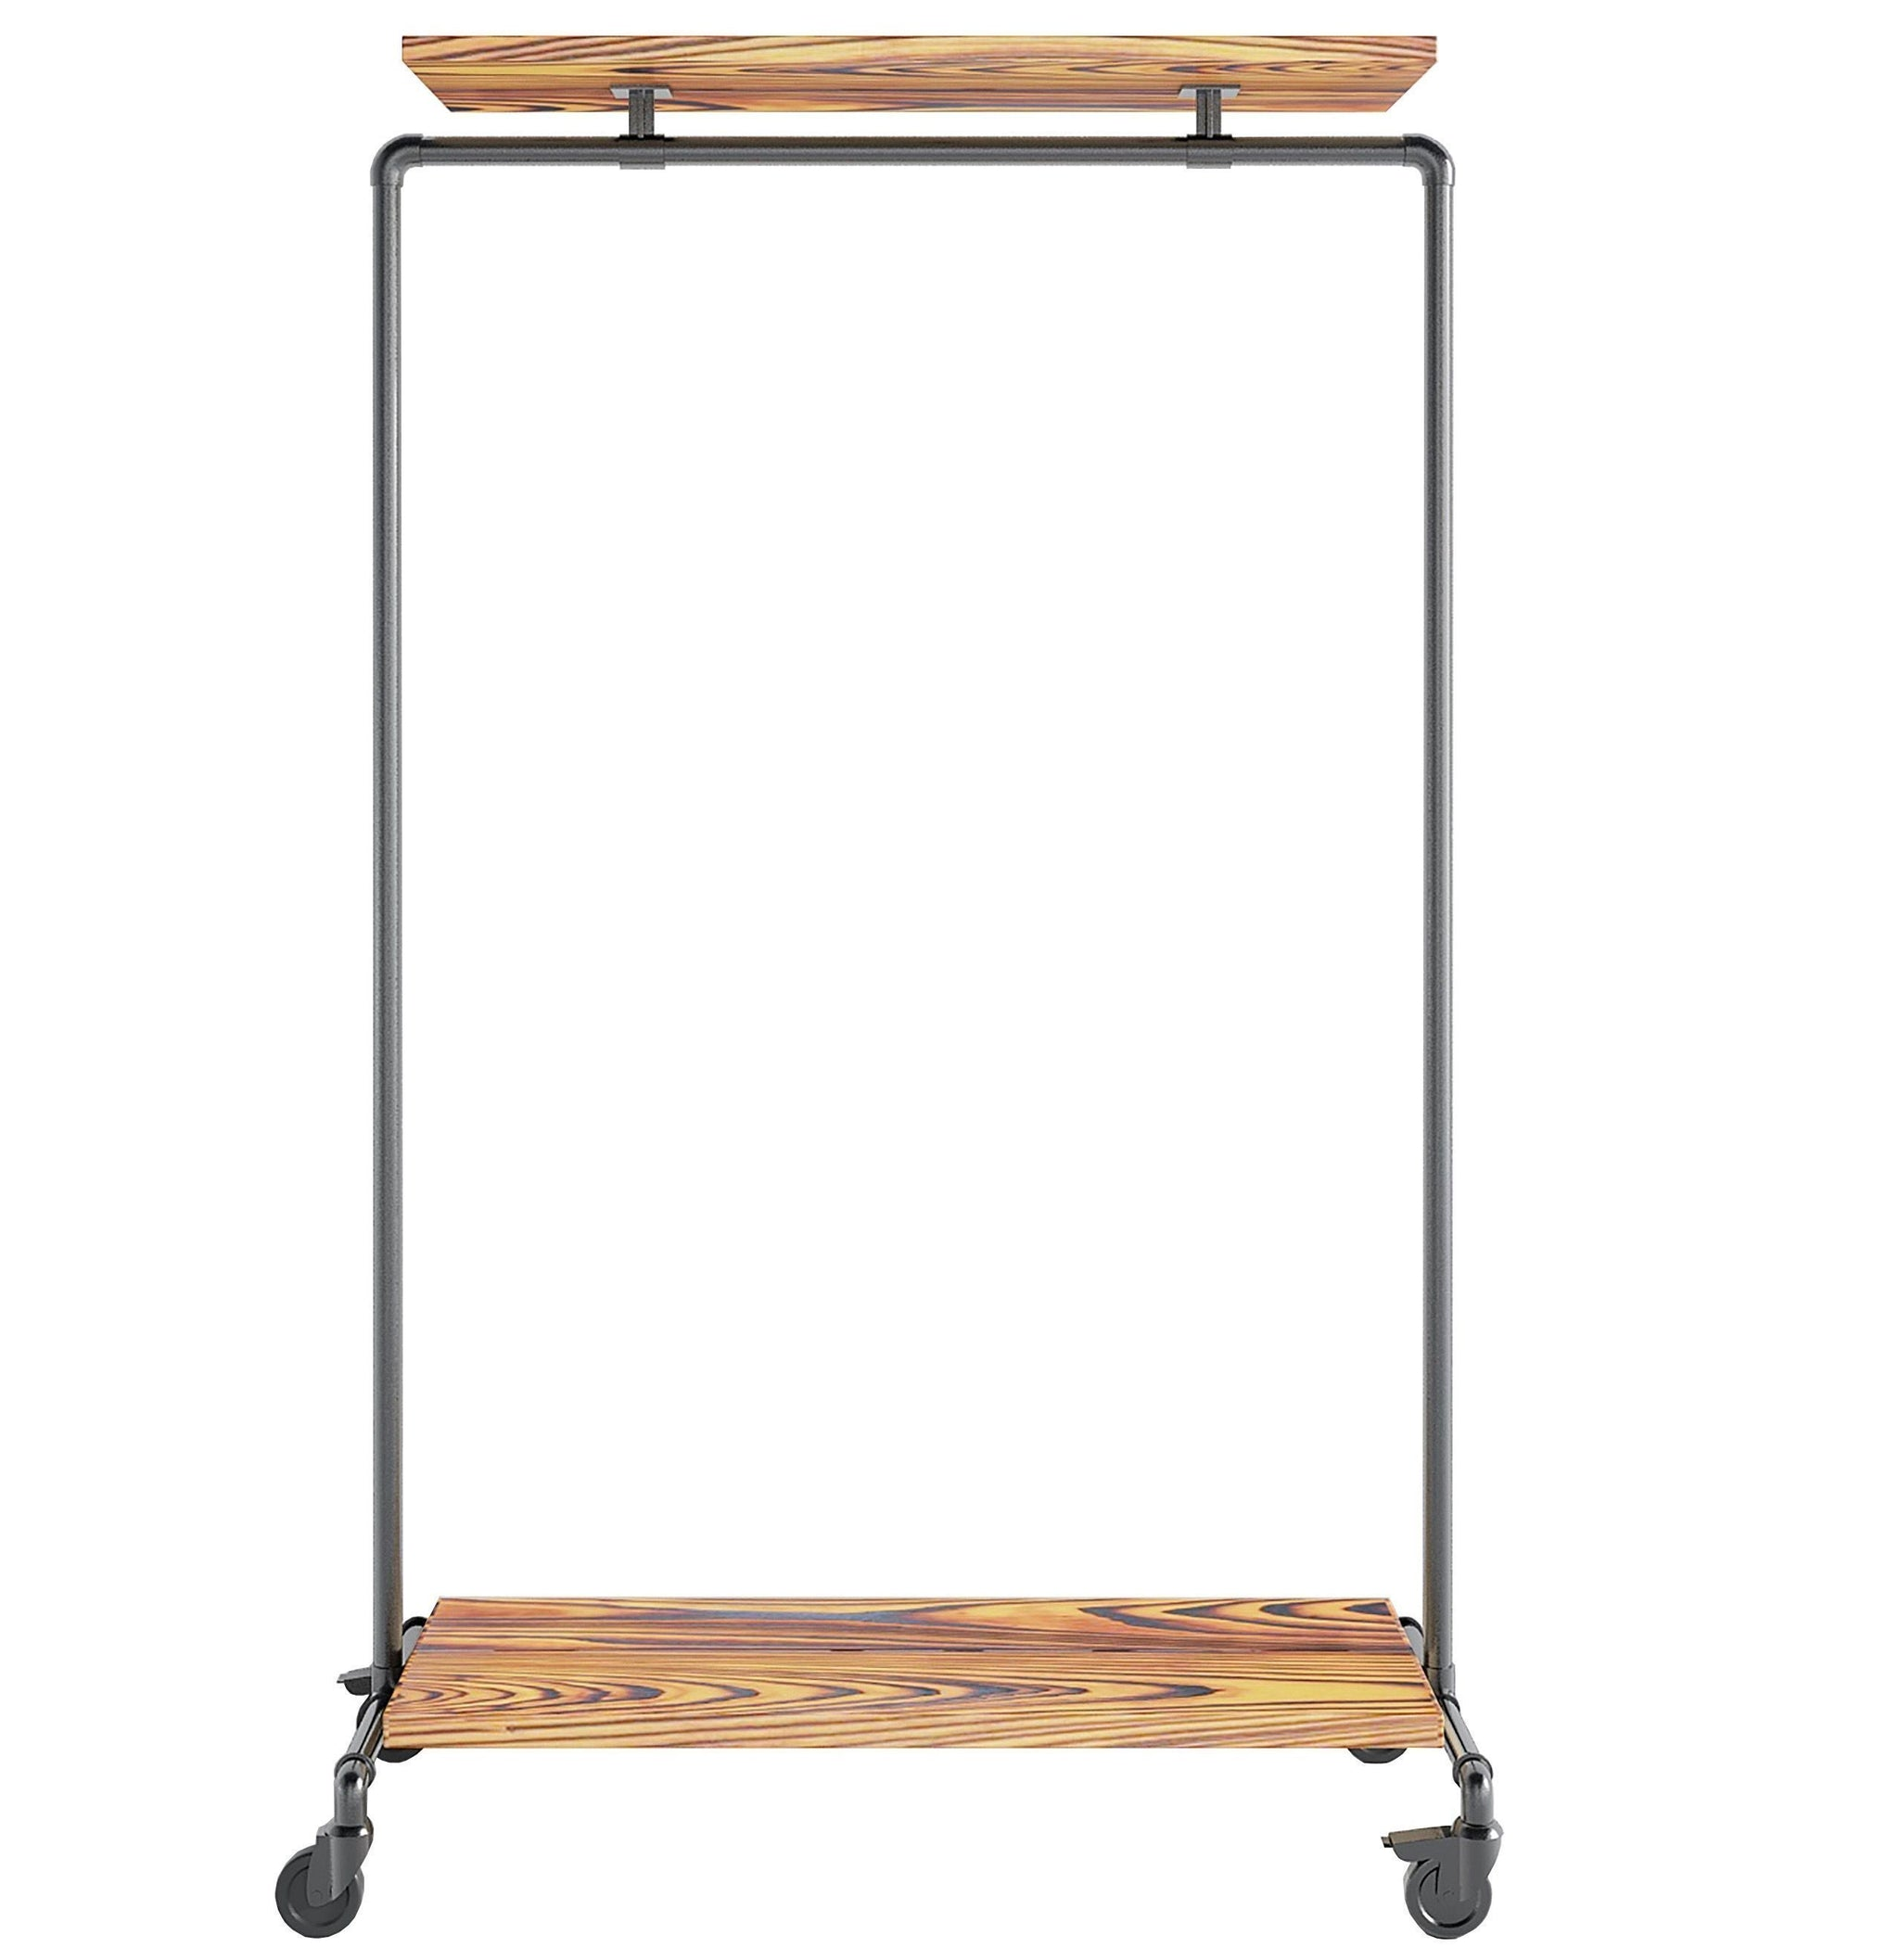 Ziito Clothes Rail A2 / 100 cm / Med Wood Double Shelf Tøjstativ